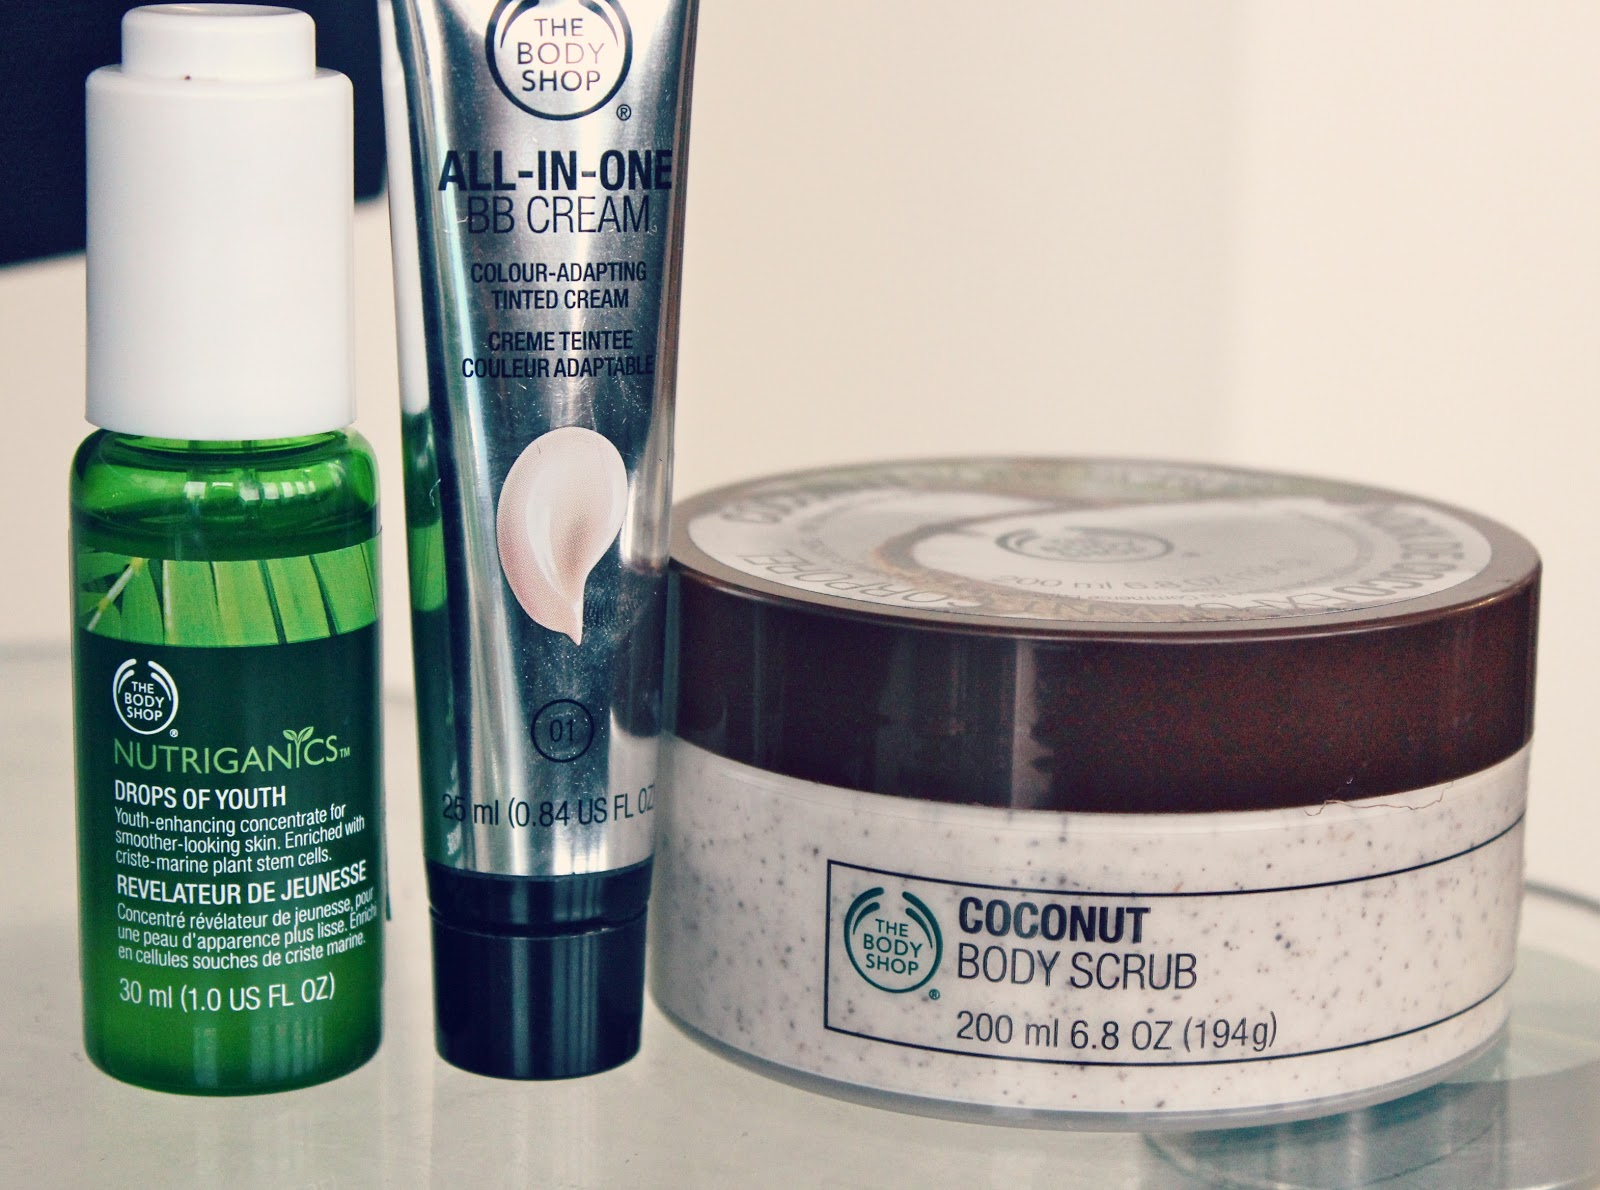 Body Shop Cream Body Scrub The Body Shop bb Cream Review